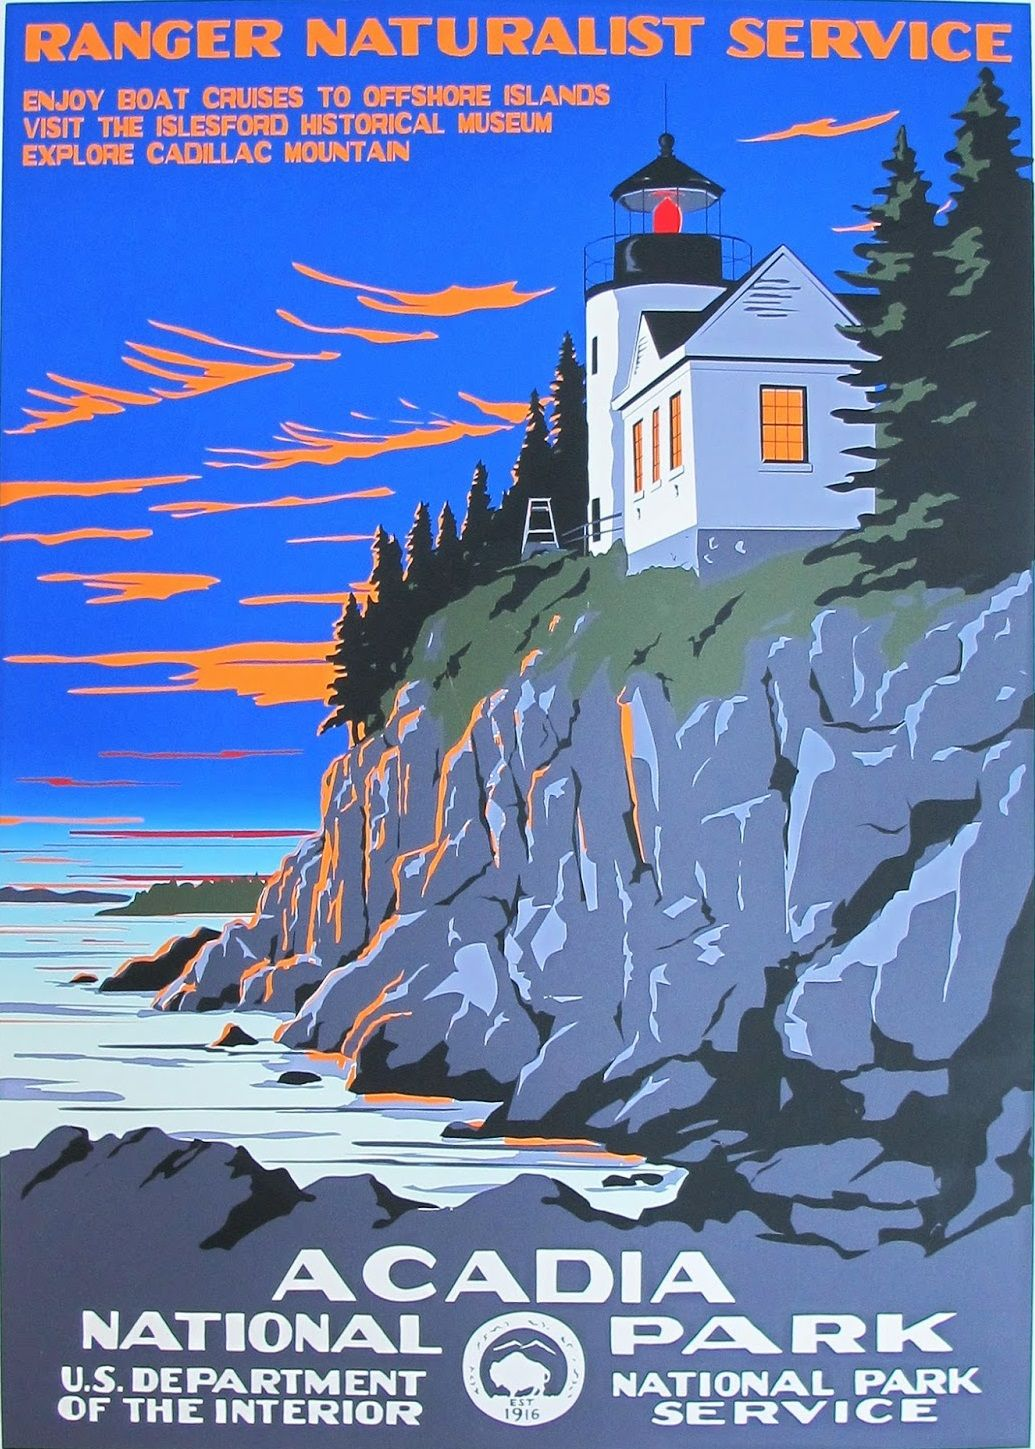 Acadia National Park Ranger Naturalist Service Wpa Poster National Park Posters Vintage Travel Posters Retro Poster